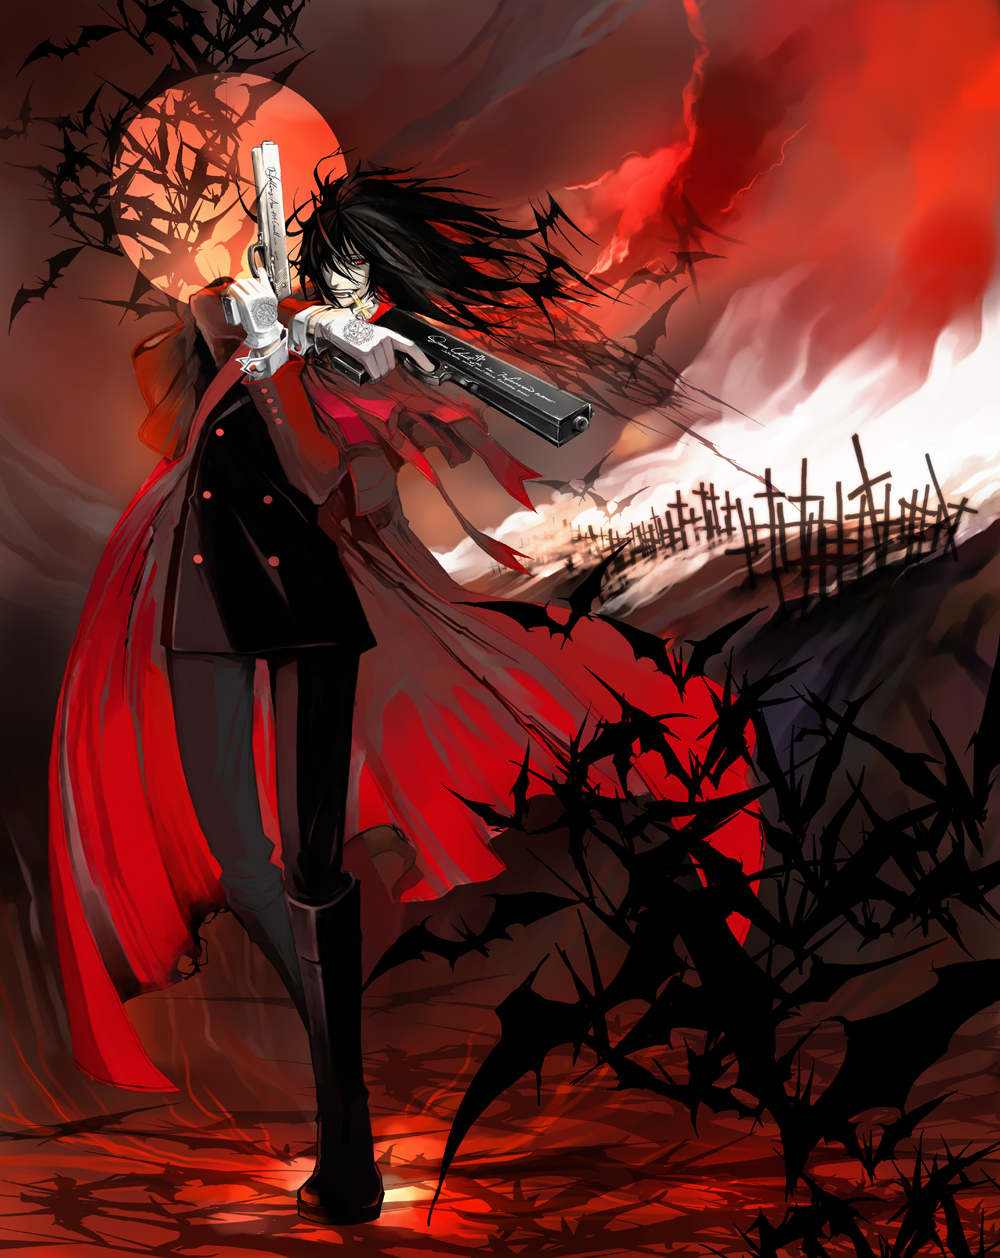 https://vignette.wikia.nocookie.net/ayakashi-ghost-guild/images/a/ab/Alucard.%28Hellsing%29.full.1177613.jpg/revision/latest?cb=20140729170757